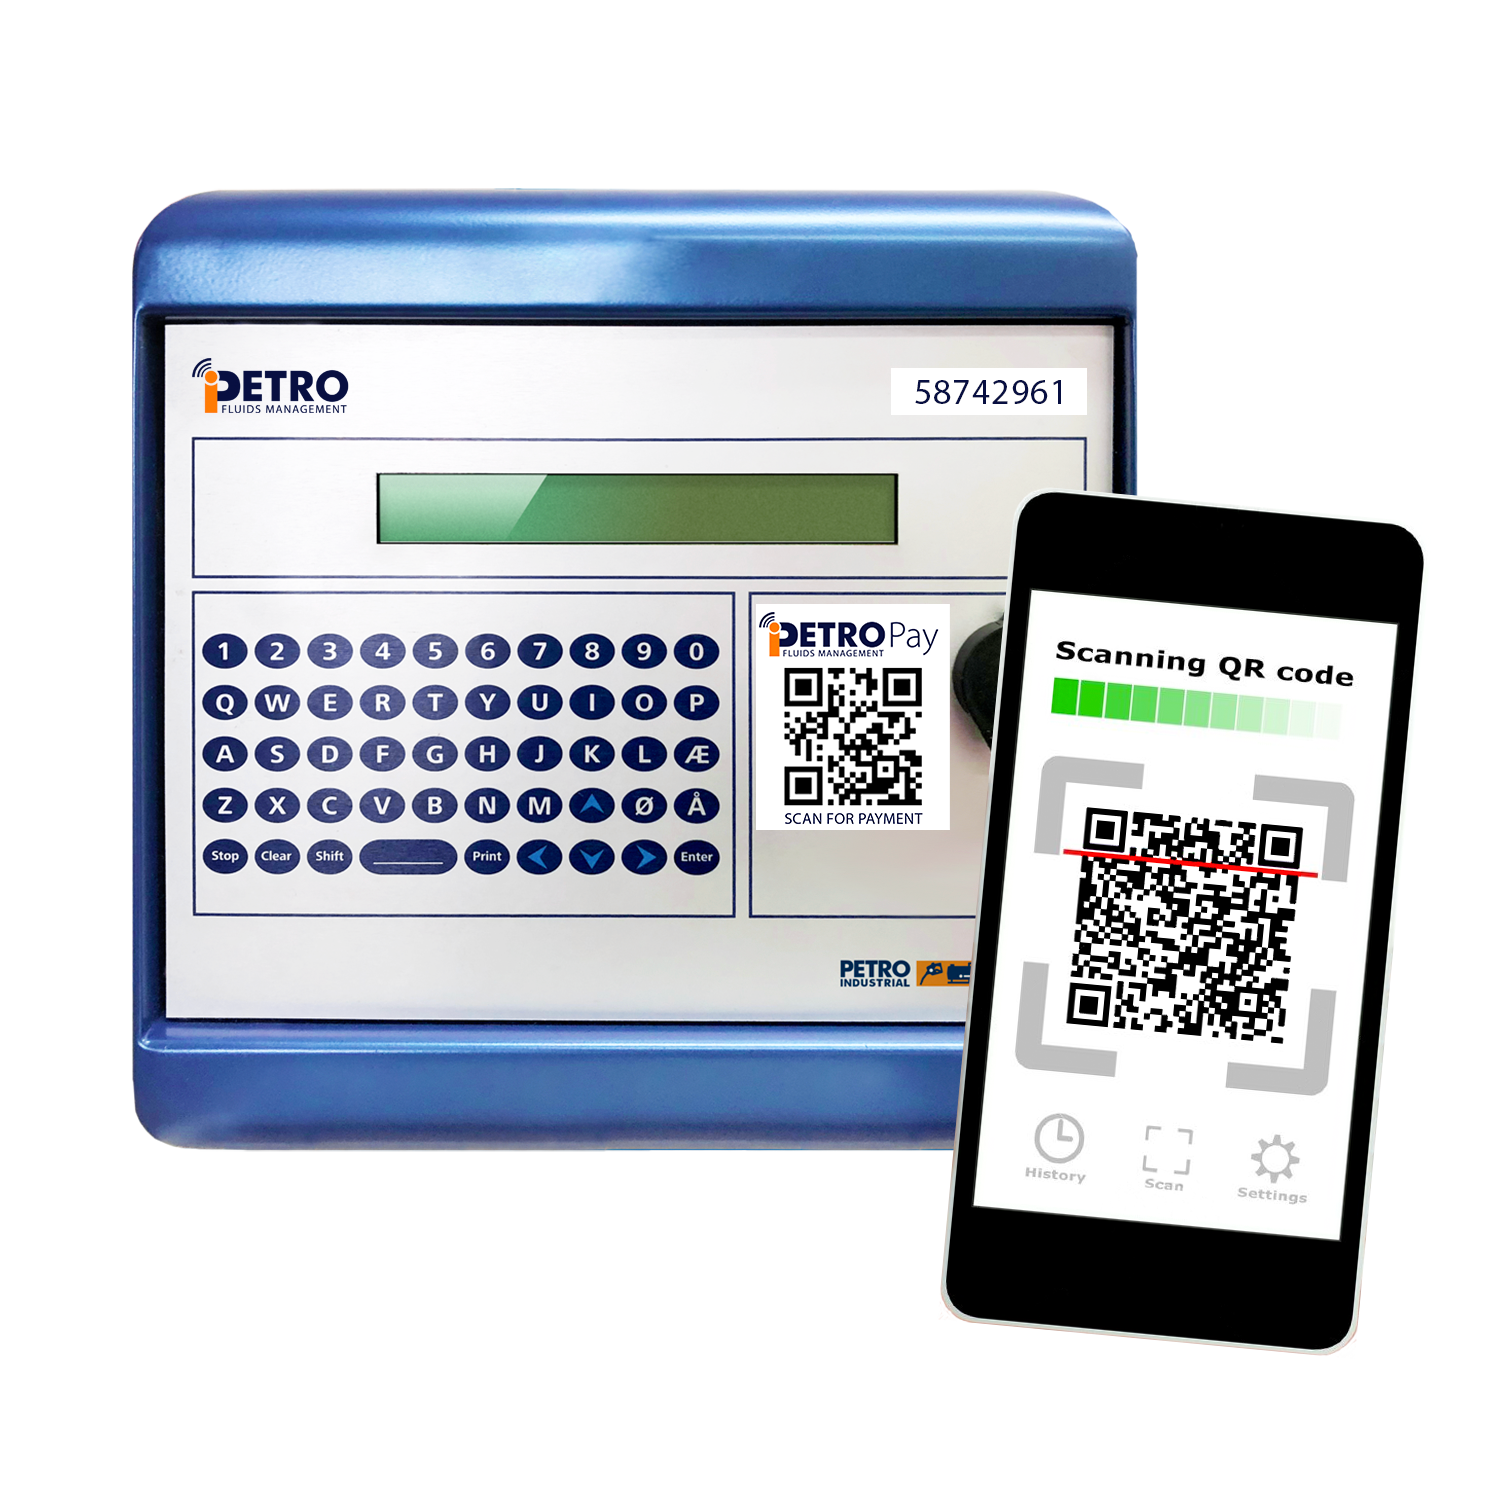 iPETRO Pay console with QR code